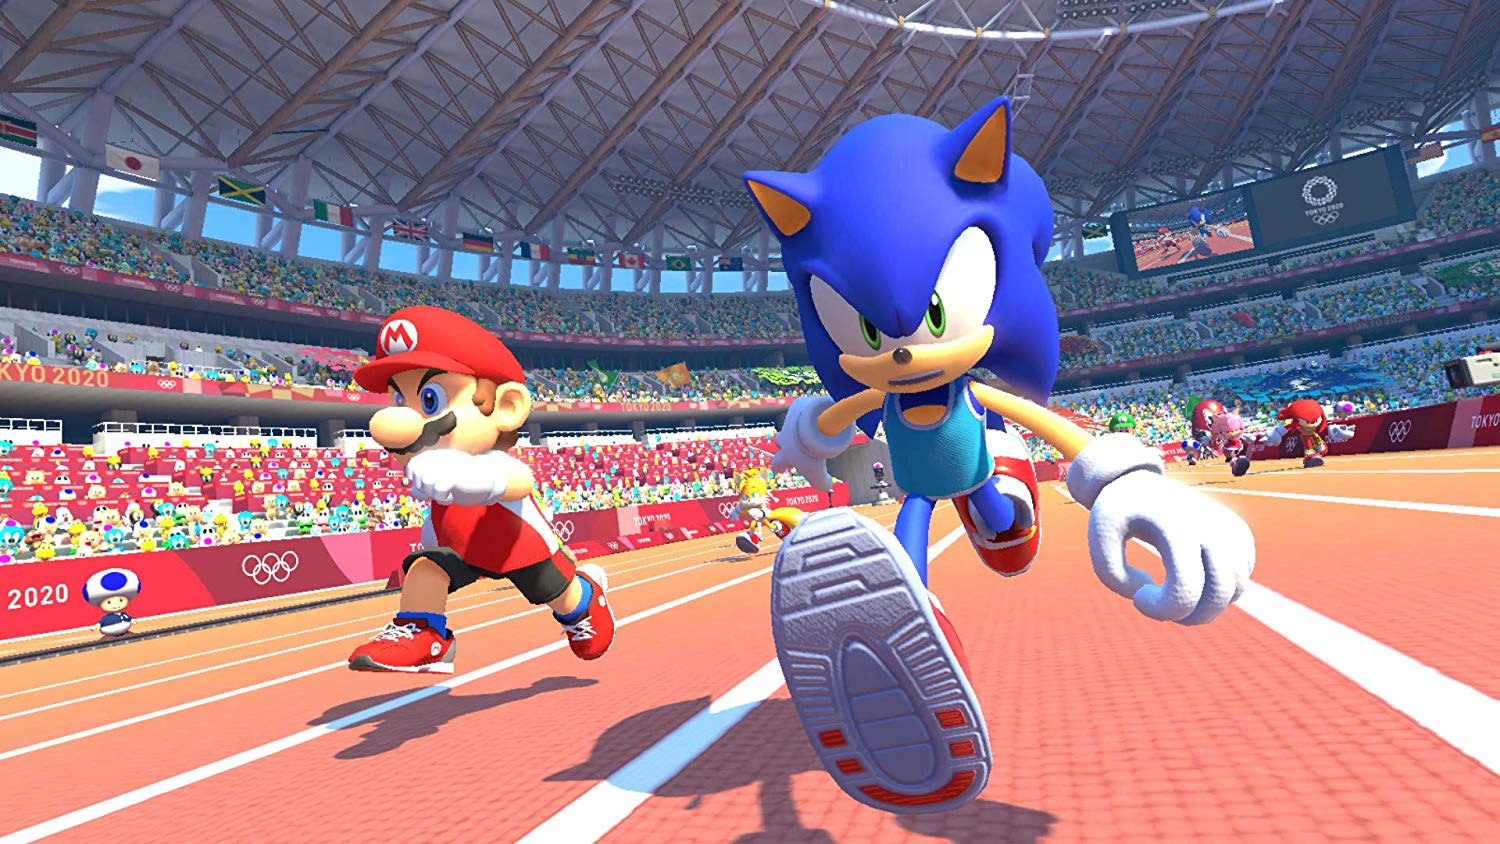 Mario & Sonic at the Olympic Games: Tokyo 2020 - Gamechanger